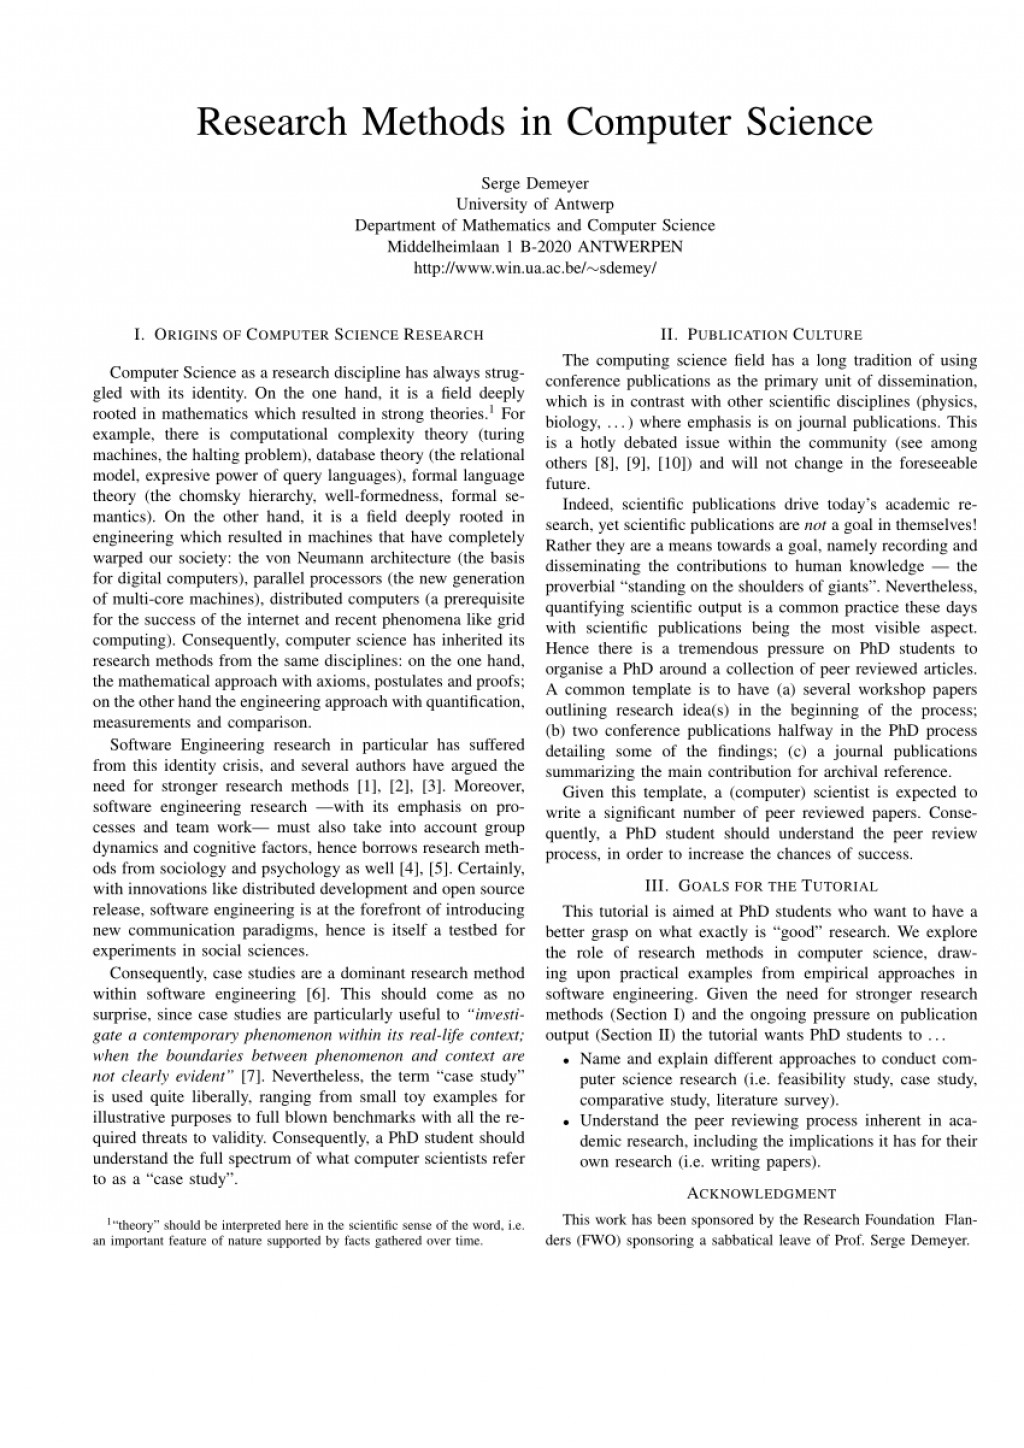 001 Largepreview Research Paper Papers In Computer Unforgettable Science Topics And Engineering On Published Large